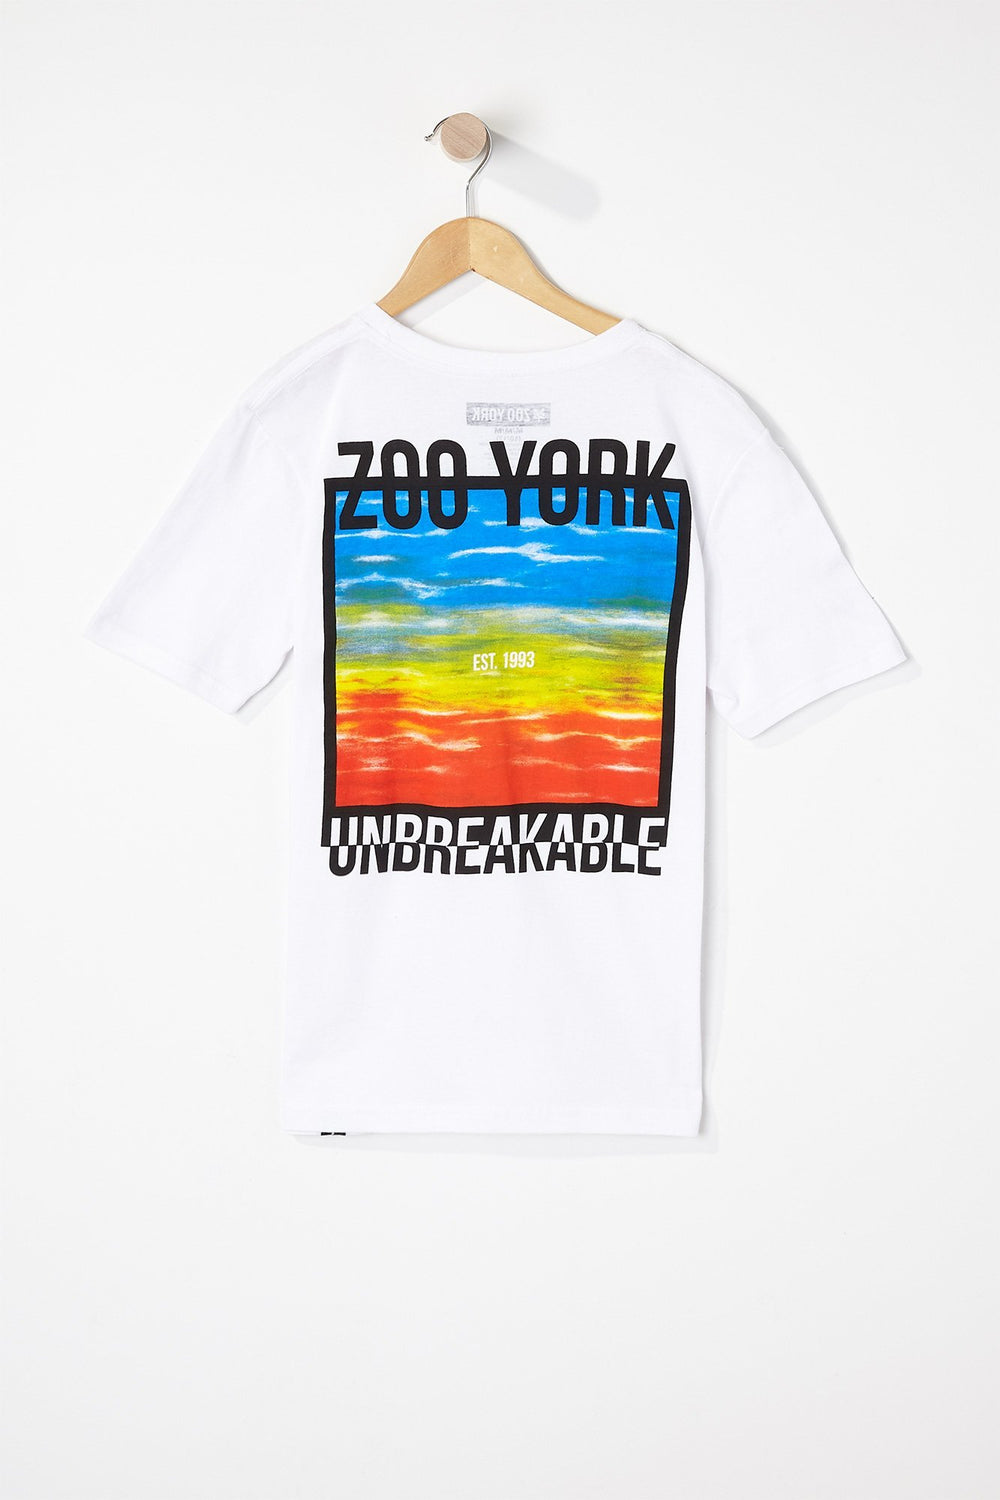 Zoo York Boys Tie Dye Square T-Shirt Zoo York Boys Tie Dye Square T-Shirt